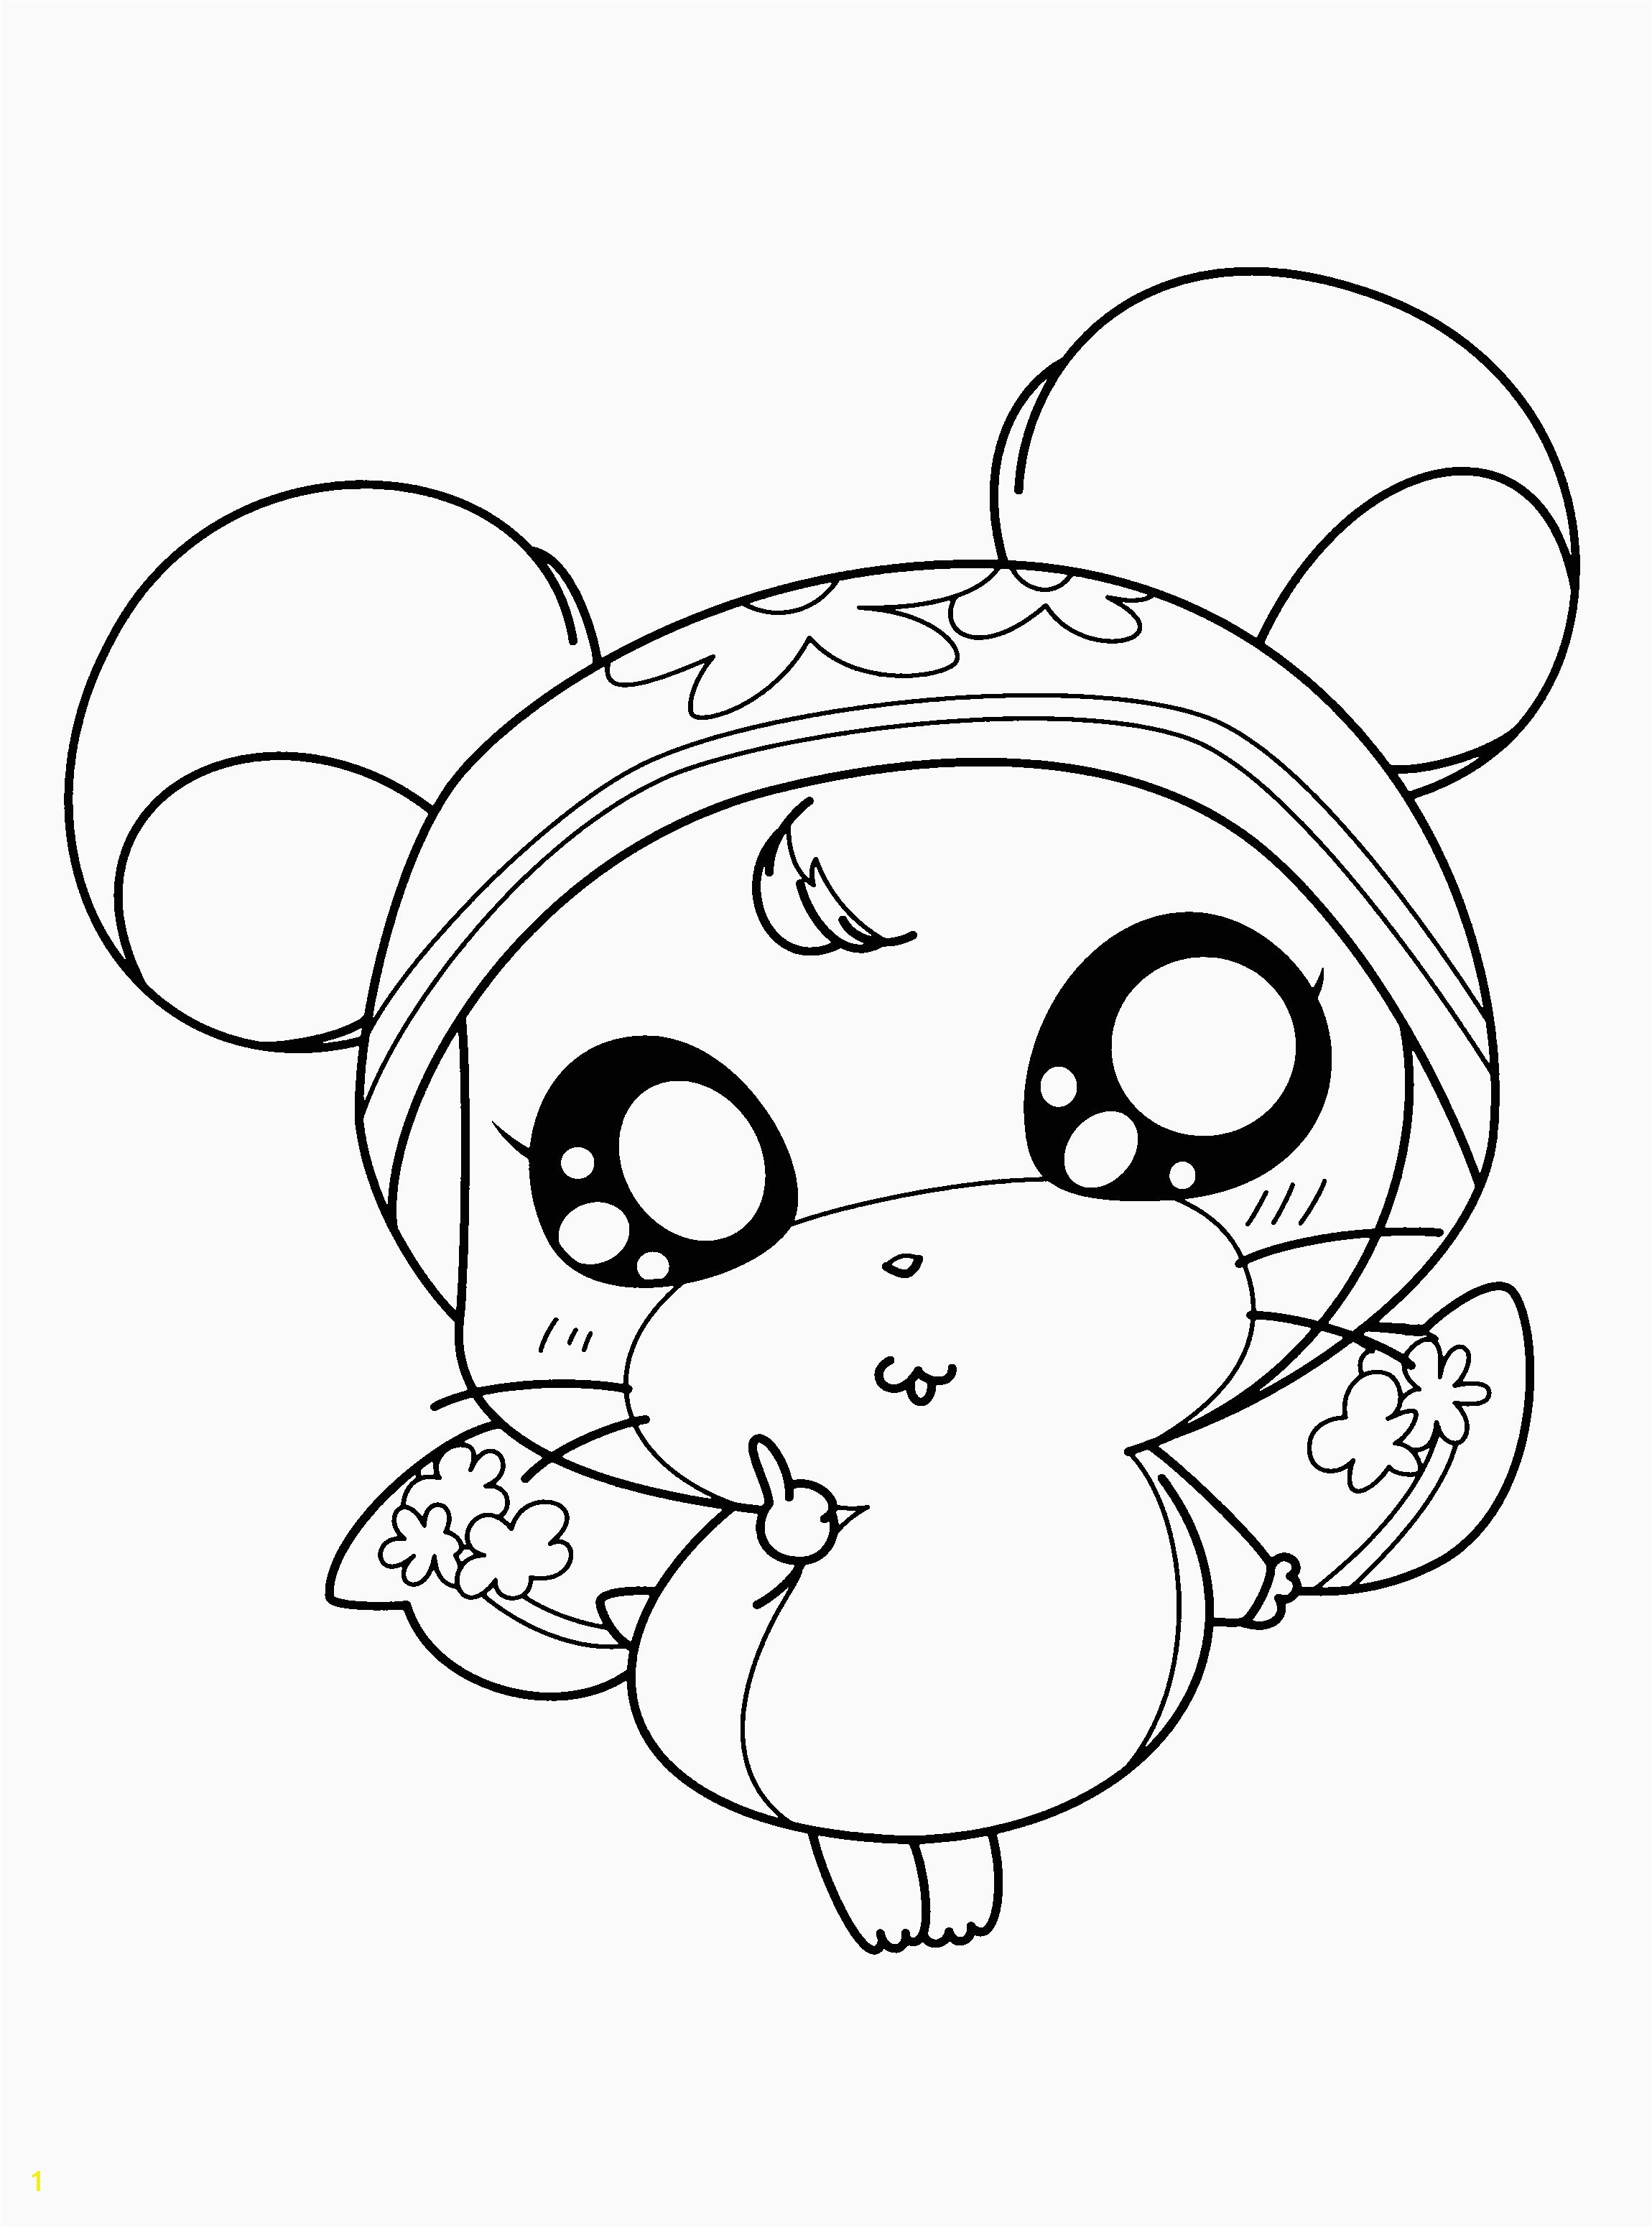 Cartoon Coloring Pages Printable Coloring Pages for Kids Printable Coloring Pages for Kids Printable